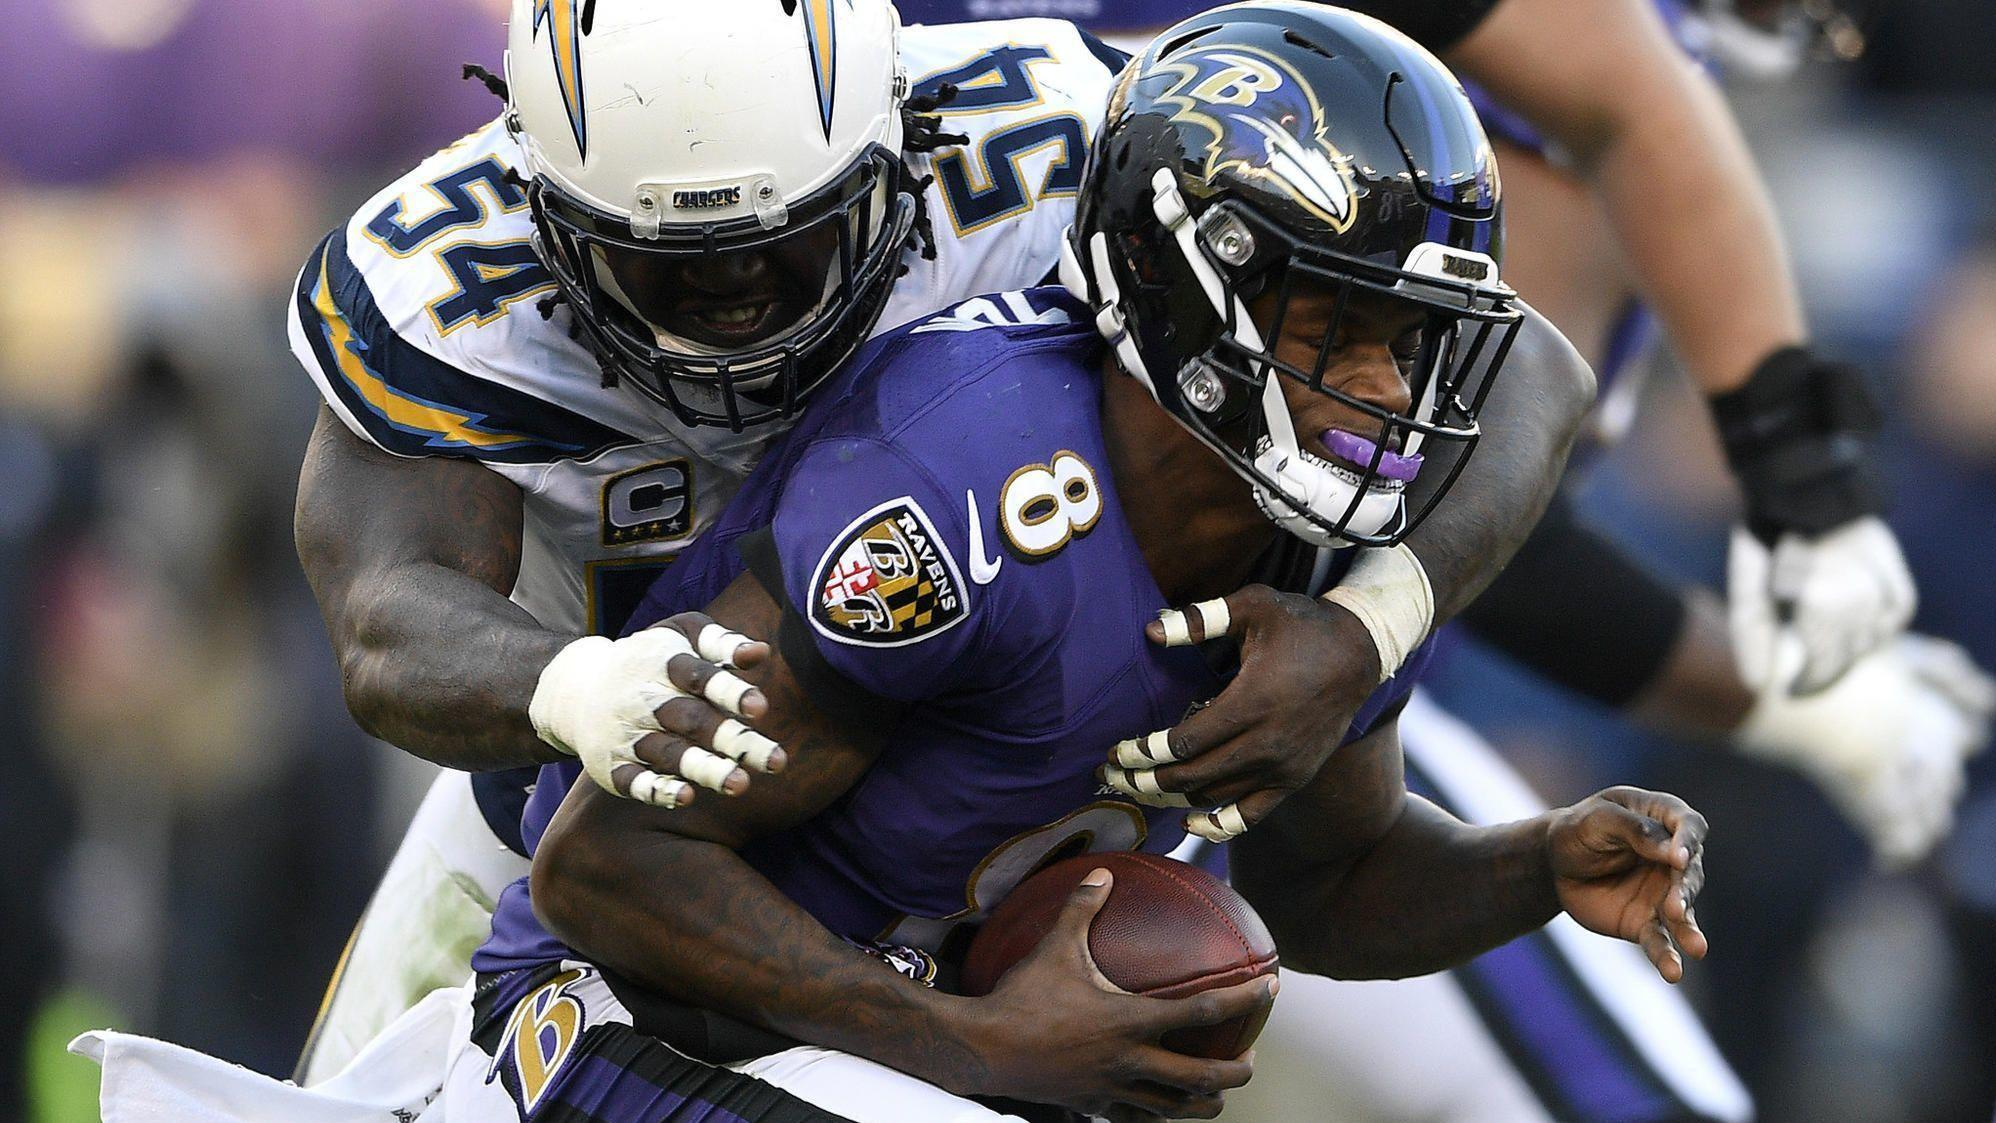 b510e1f6091 Instant analysis: After awful start, late charge can't save Ravens' season  in 23-17 wild-card-round loss to Chargers